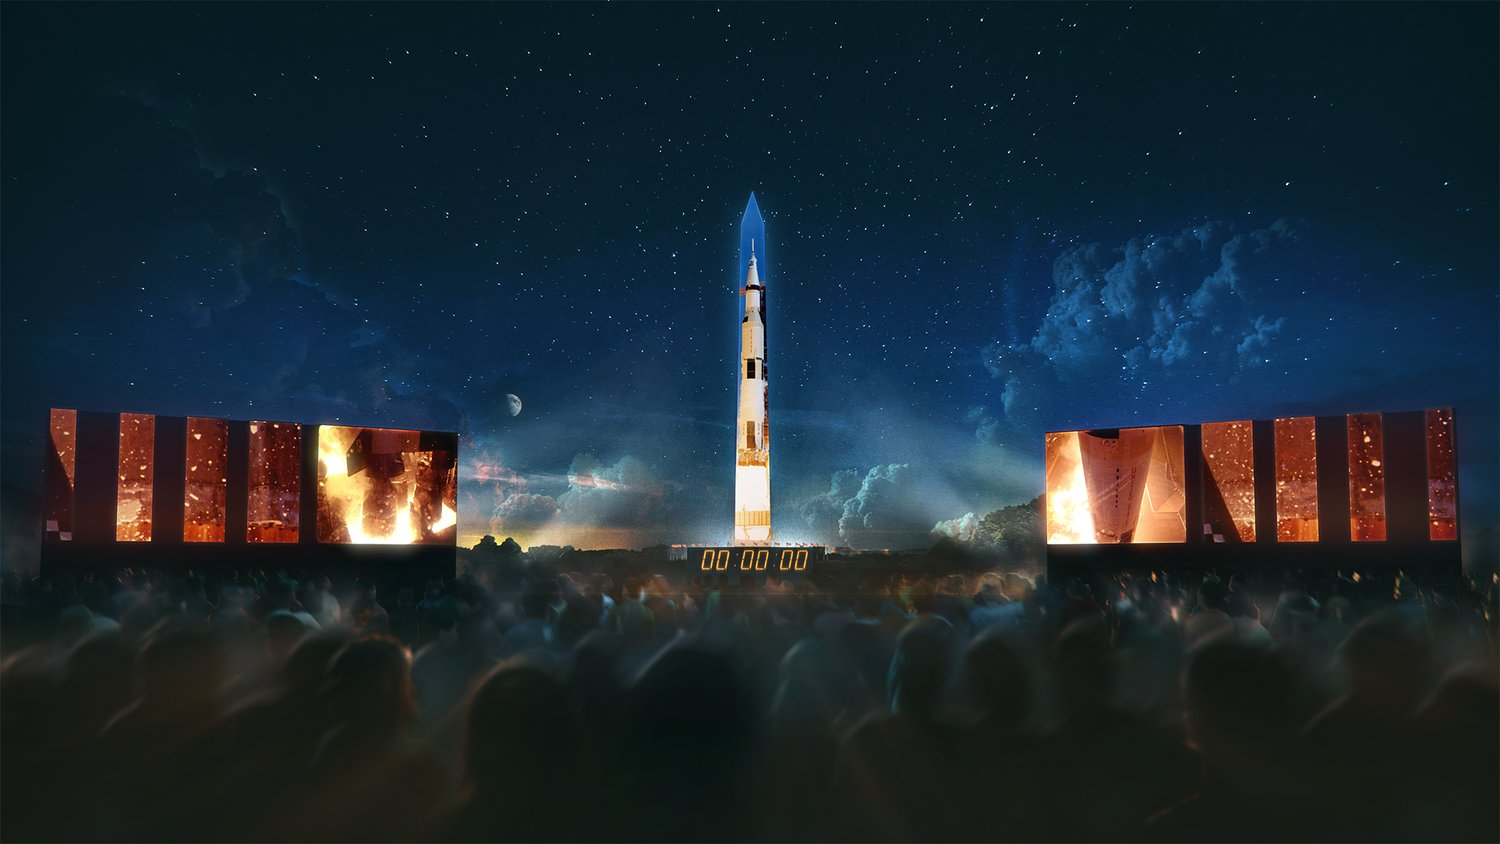 """Apollo 50: Go for the Moon,"" a special 17-minute show, will combine full-motion projection-mapping artwork on the Washington Monument and archival footage on screens located on the National Mall near the Smithsonian Castle to recreate the launch of Apollo 11 and tell the story of the first moon landing."